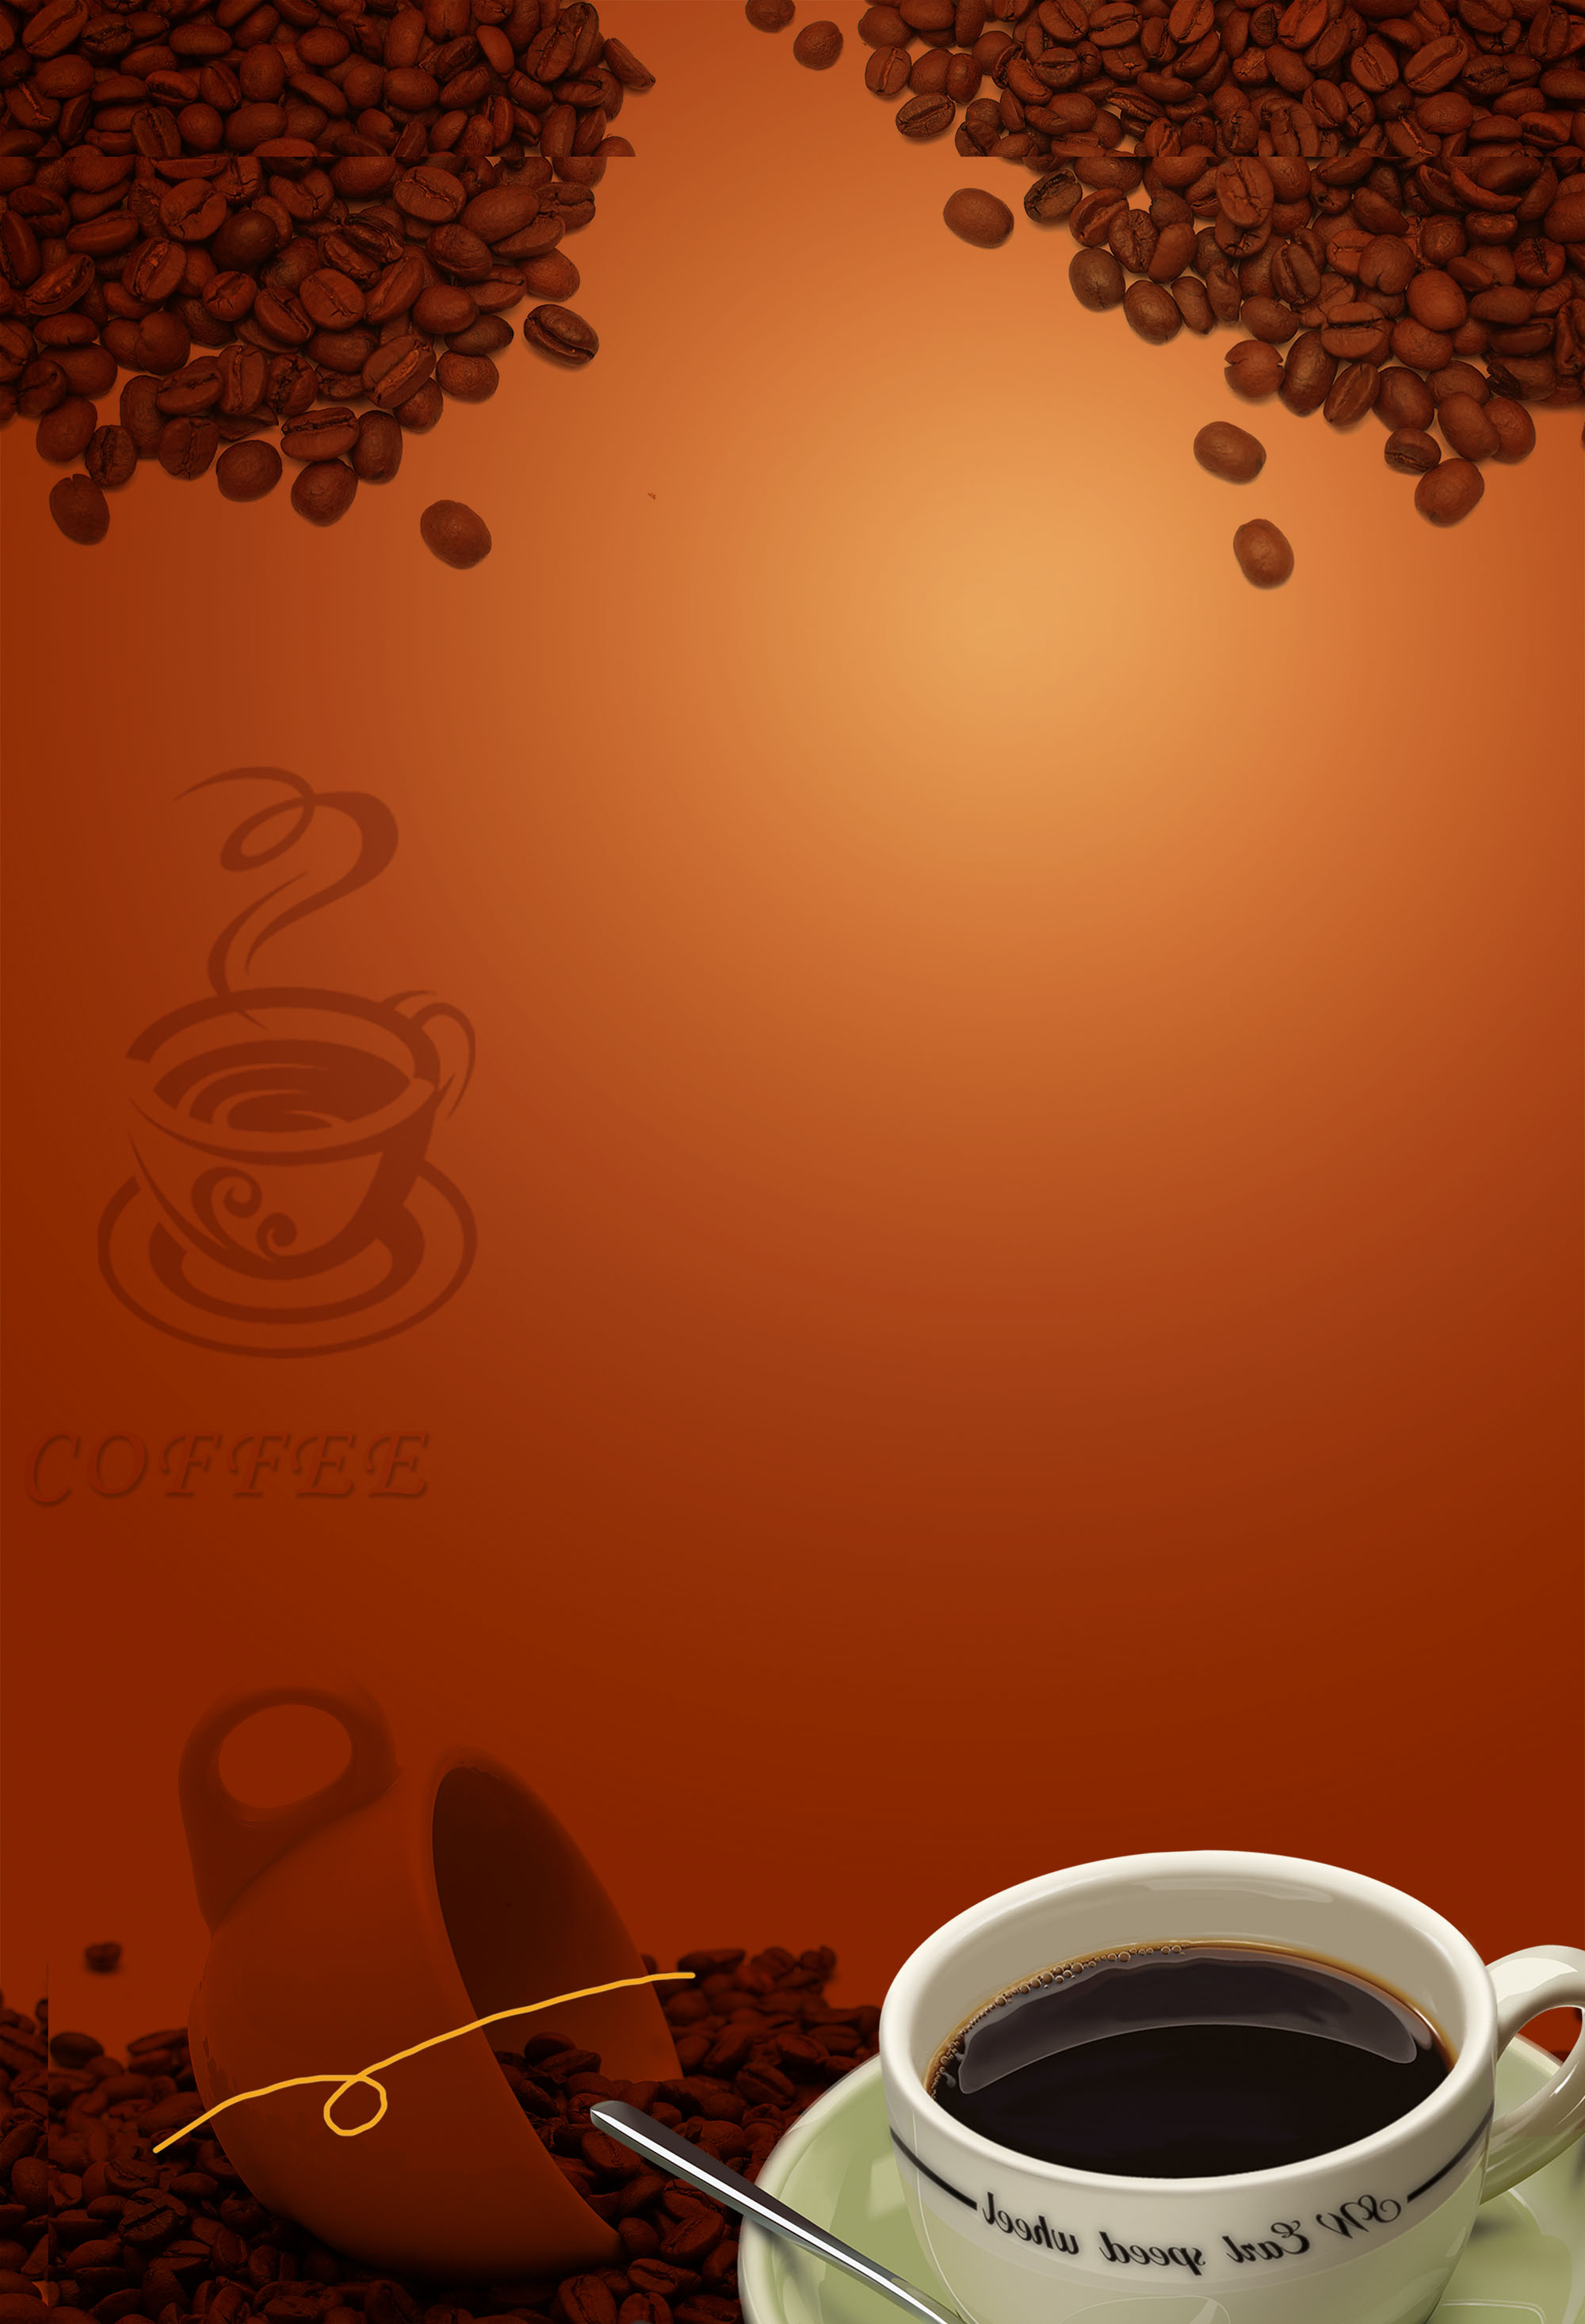 coffee menu retro background  coffee  beans  mug